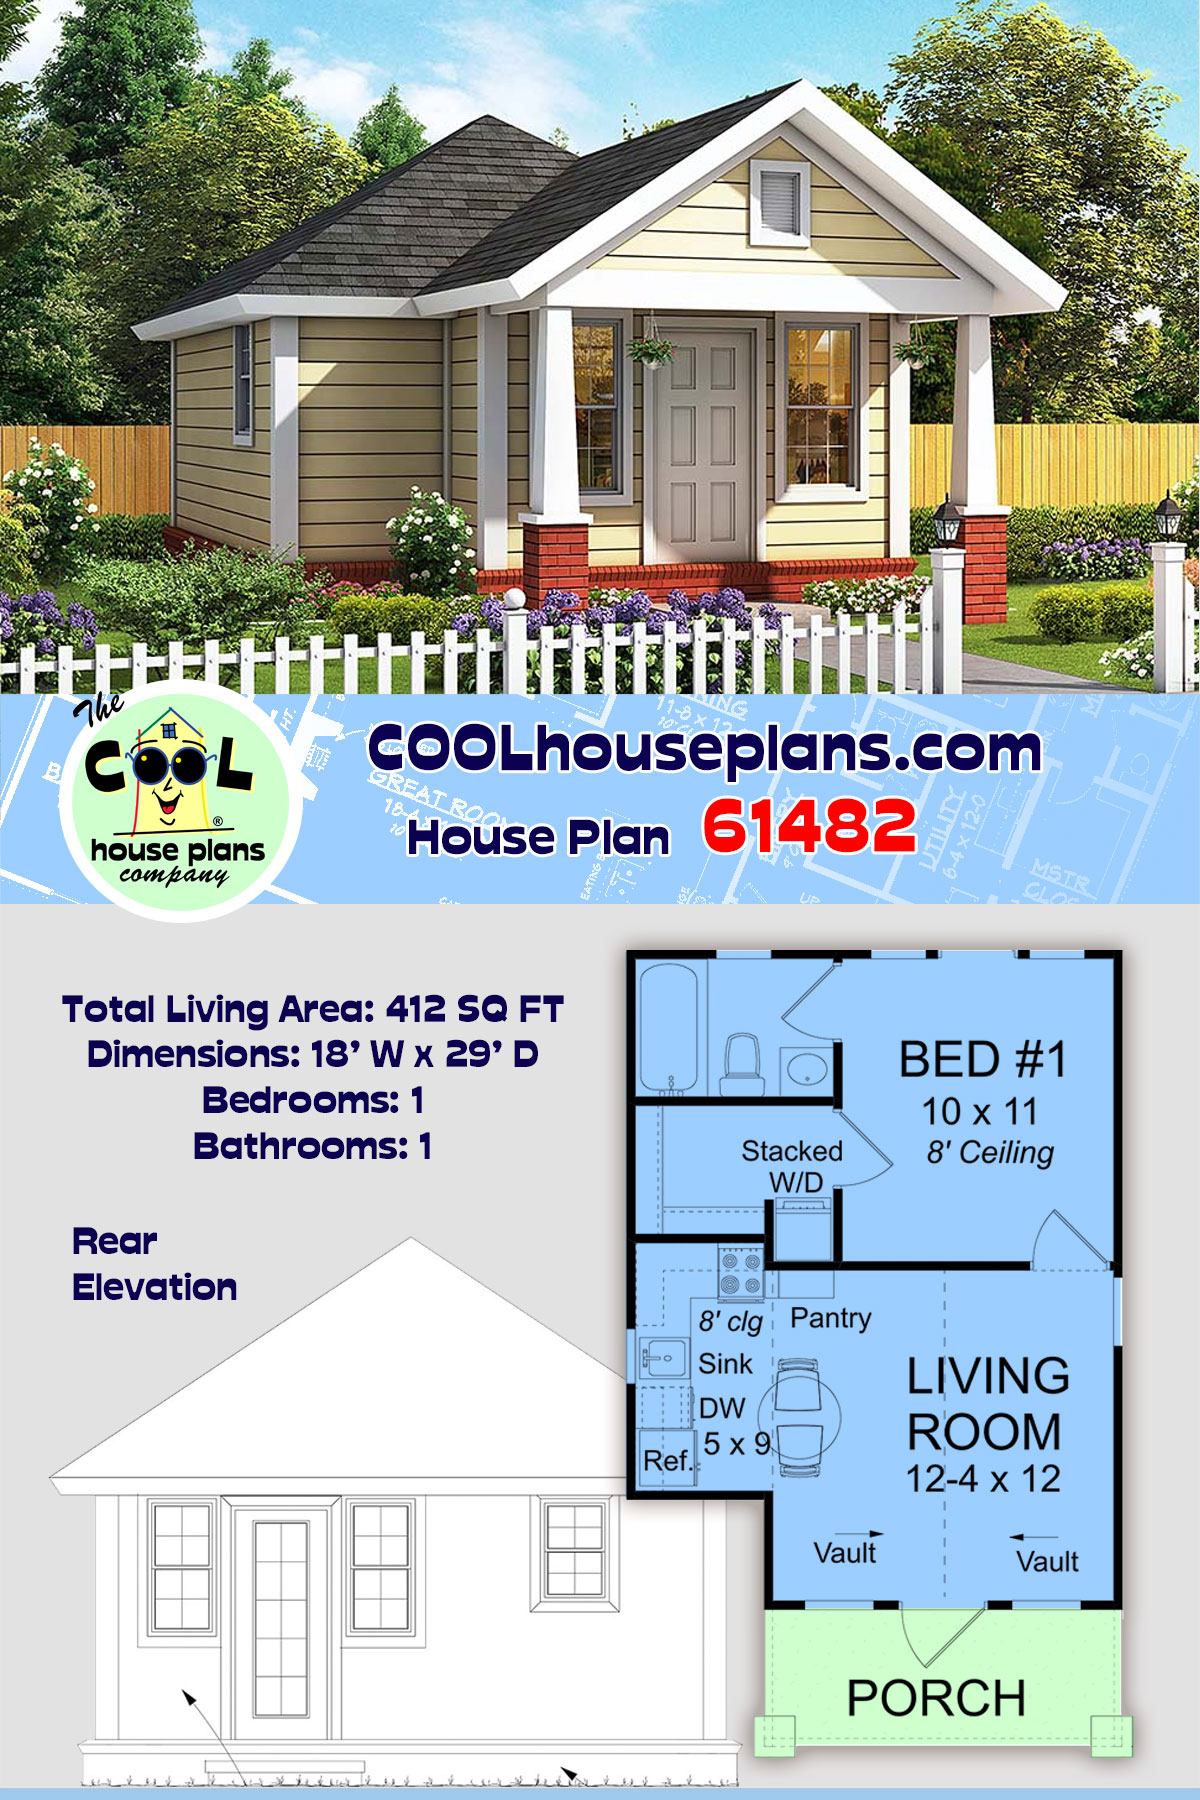 Cottage, Traditional House Plan 61482 with 1 Beds, 1 Baths